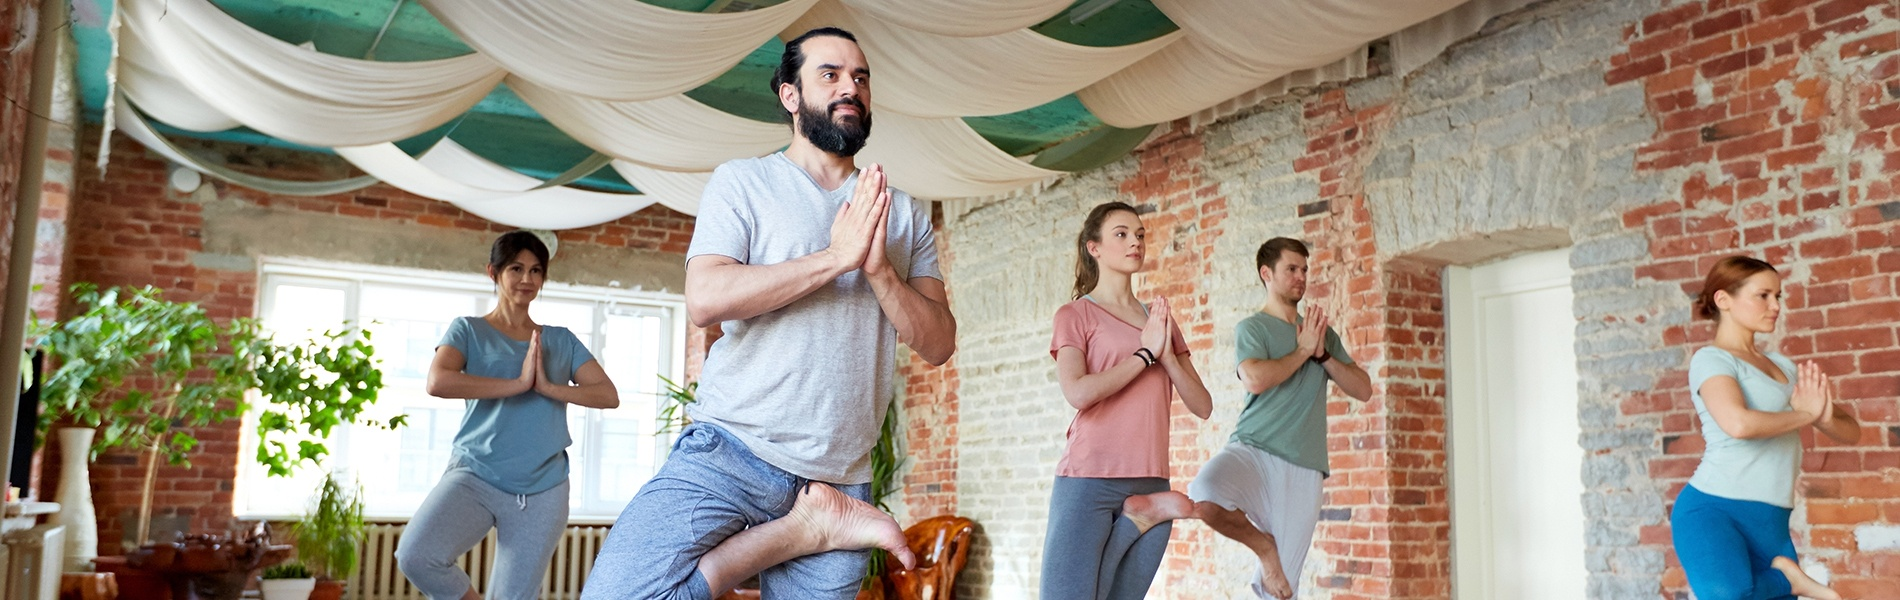 social-postBlog-When Should You Open Your Second Yoga Studio.jpg